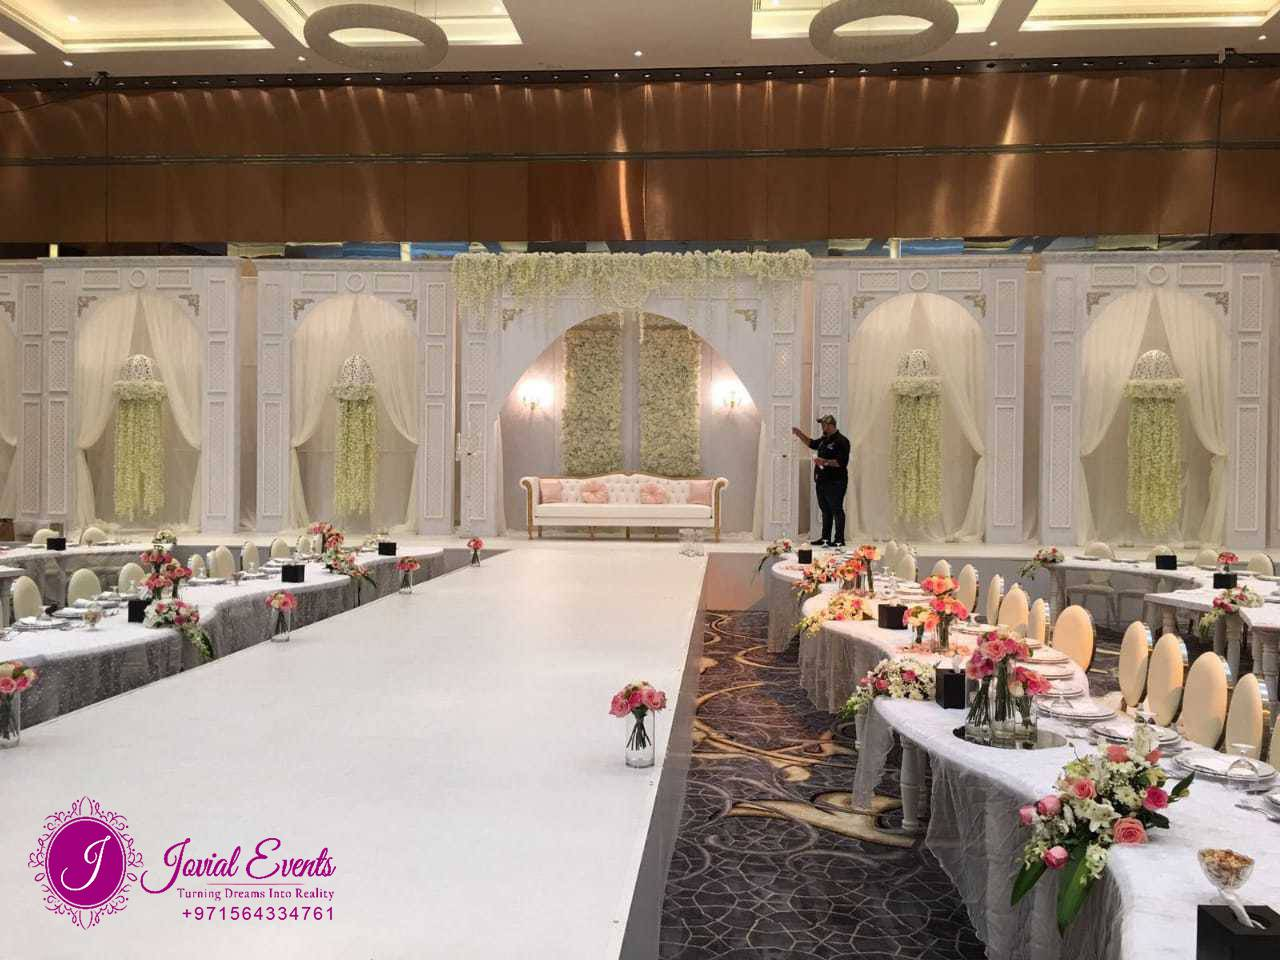 wedding-event-management-companies-in-Abu-Dhabiwedding-event-management-companies-in-Abu-Dhabi-1